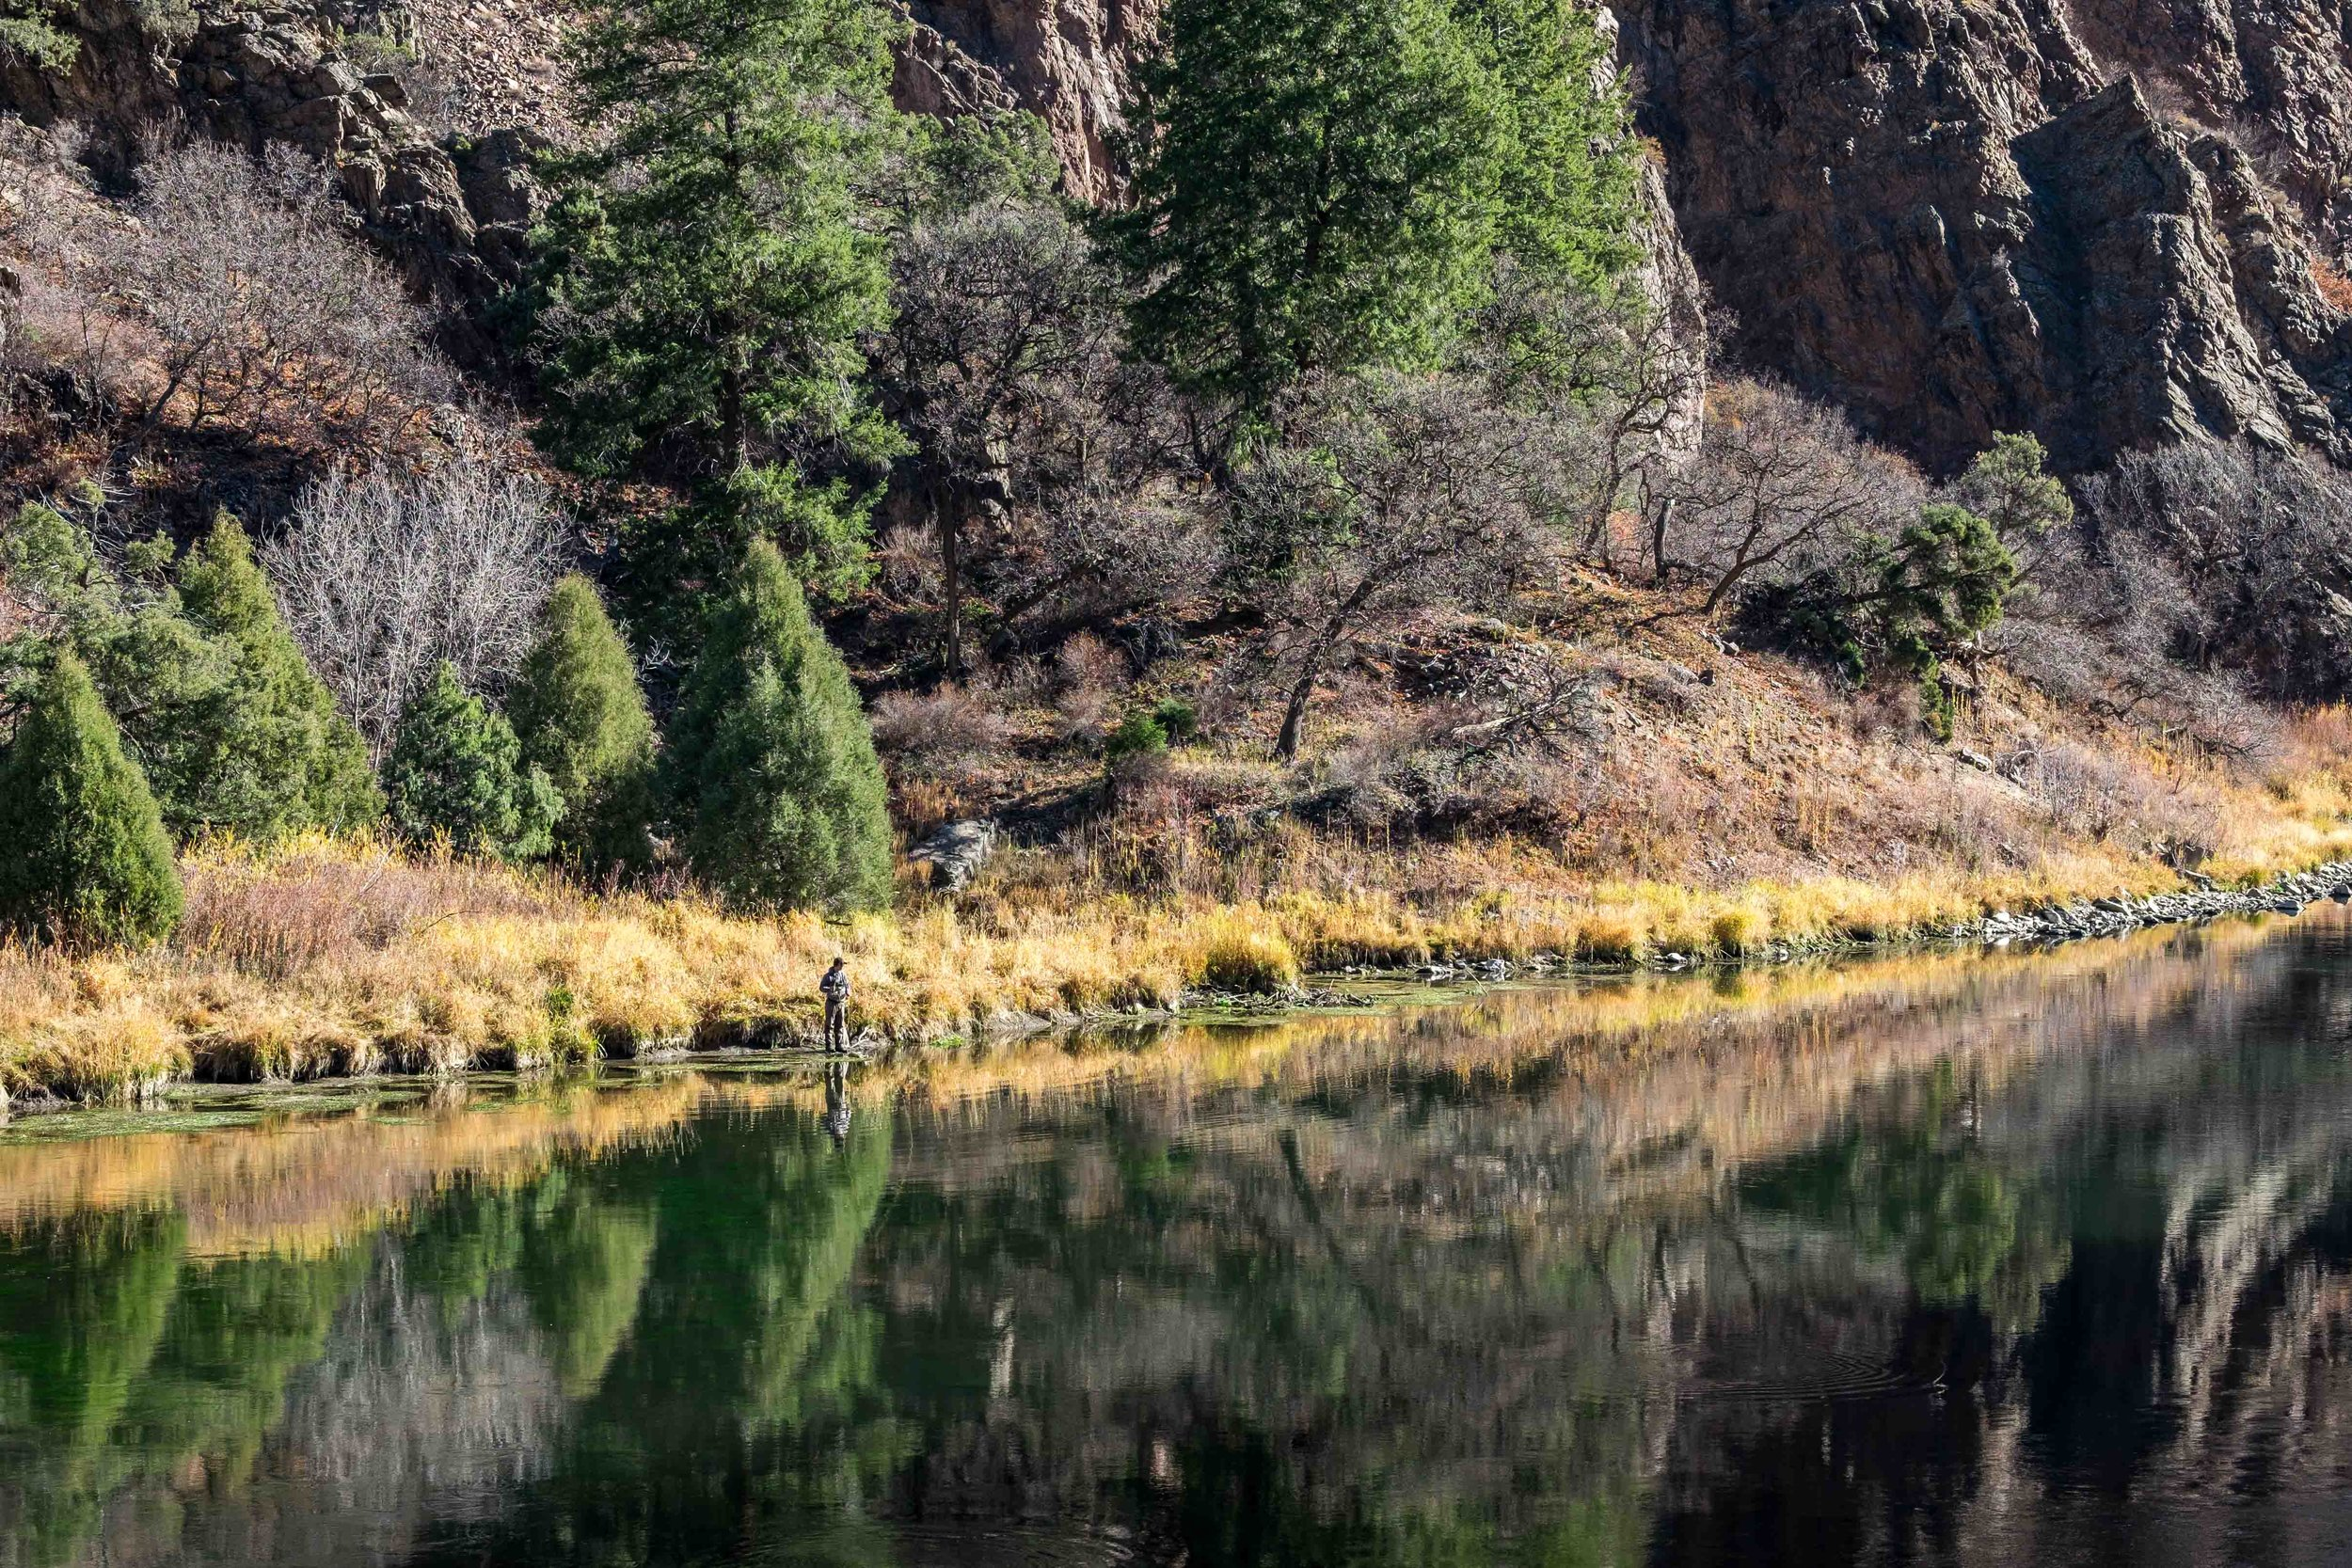 The Gunnison River is a prime fishing place for locals.